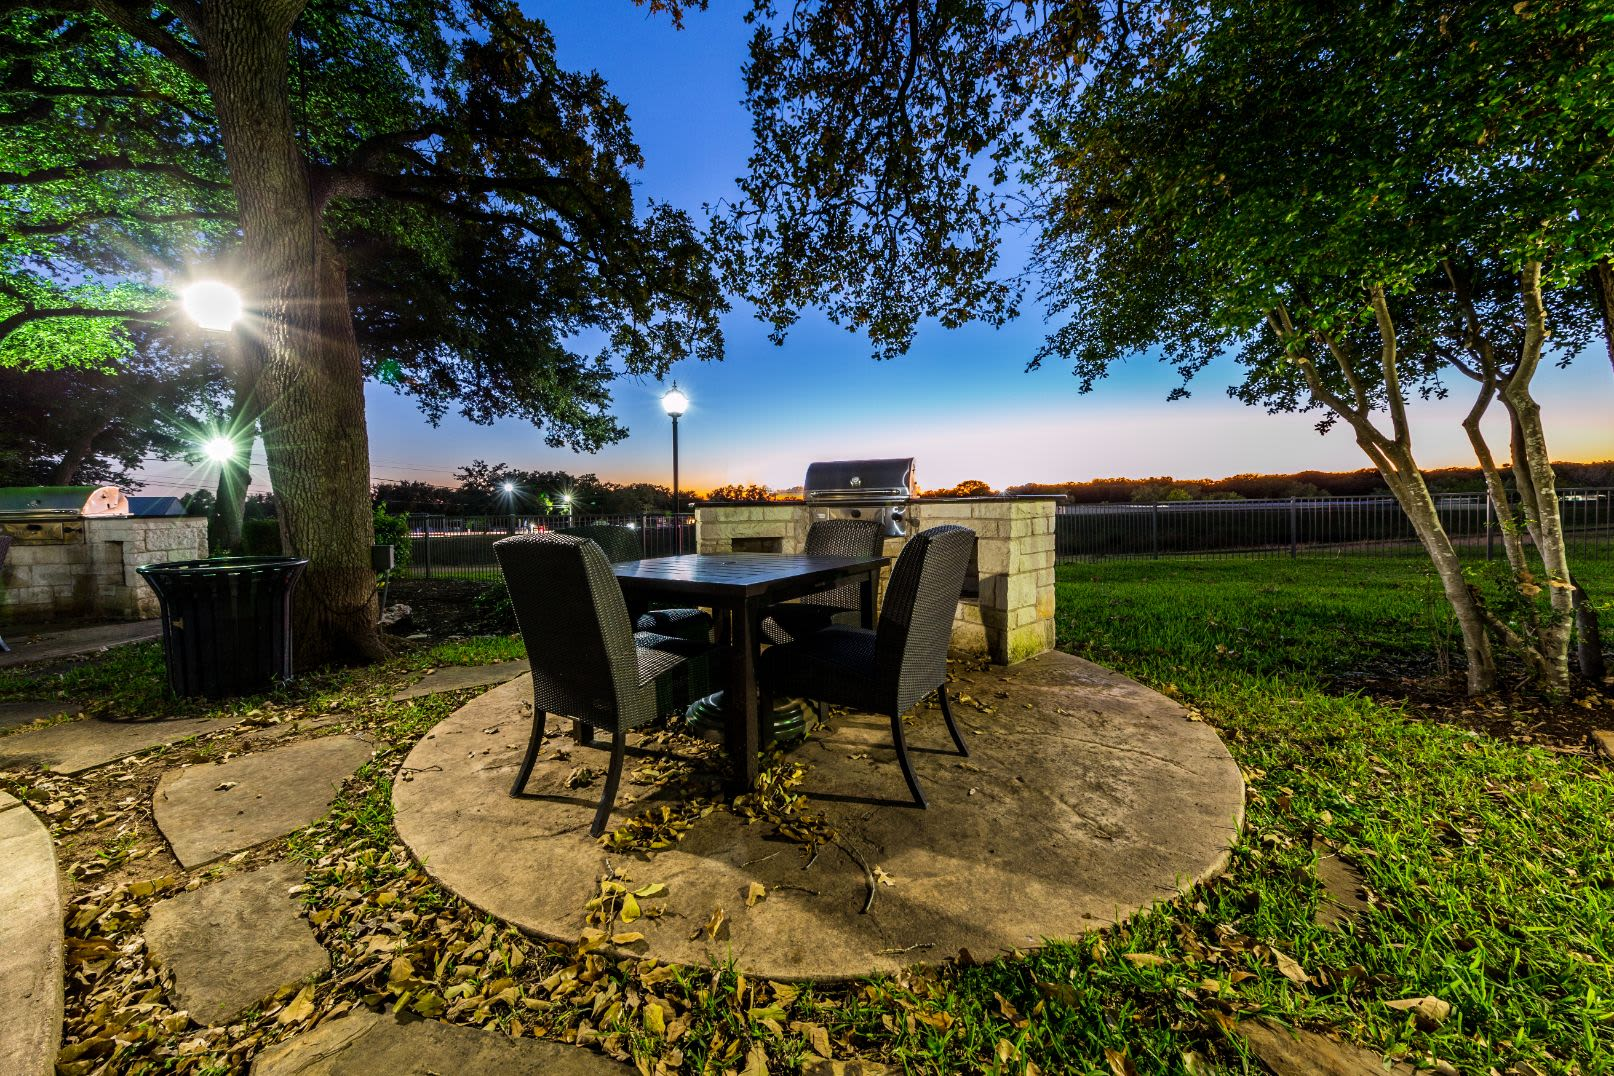 Table and chairs on a patio at sunset at The Marquis at Brushy Creek in Austin, Texas